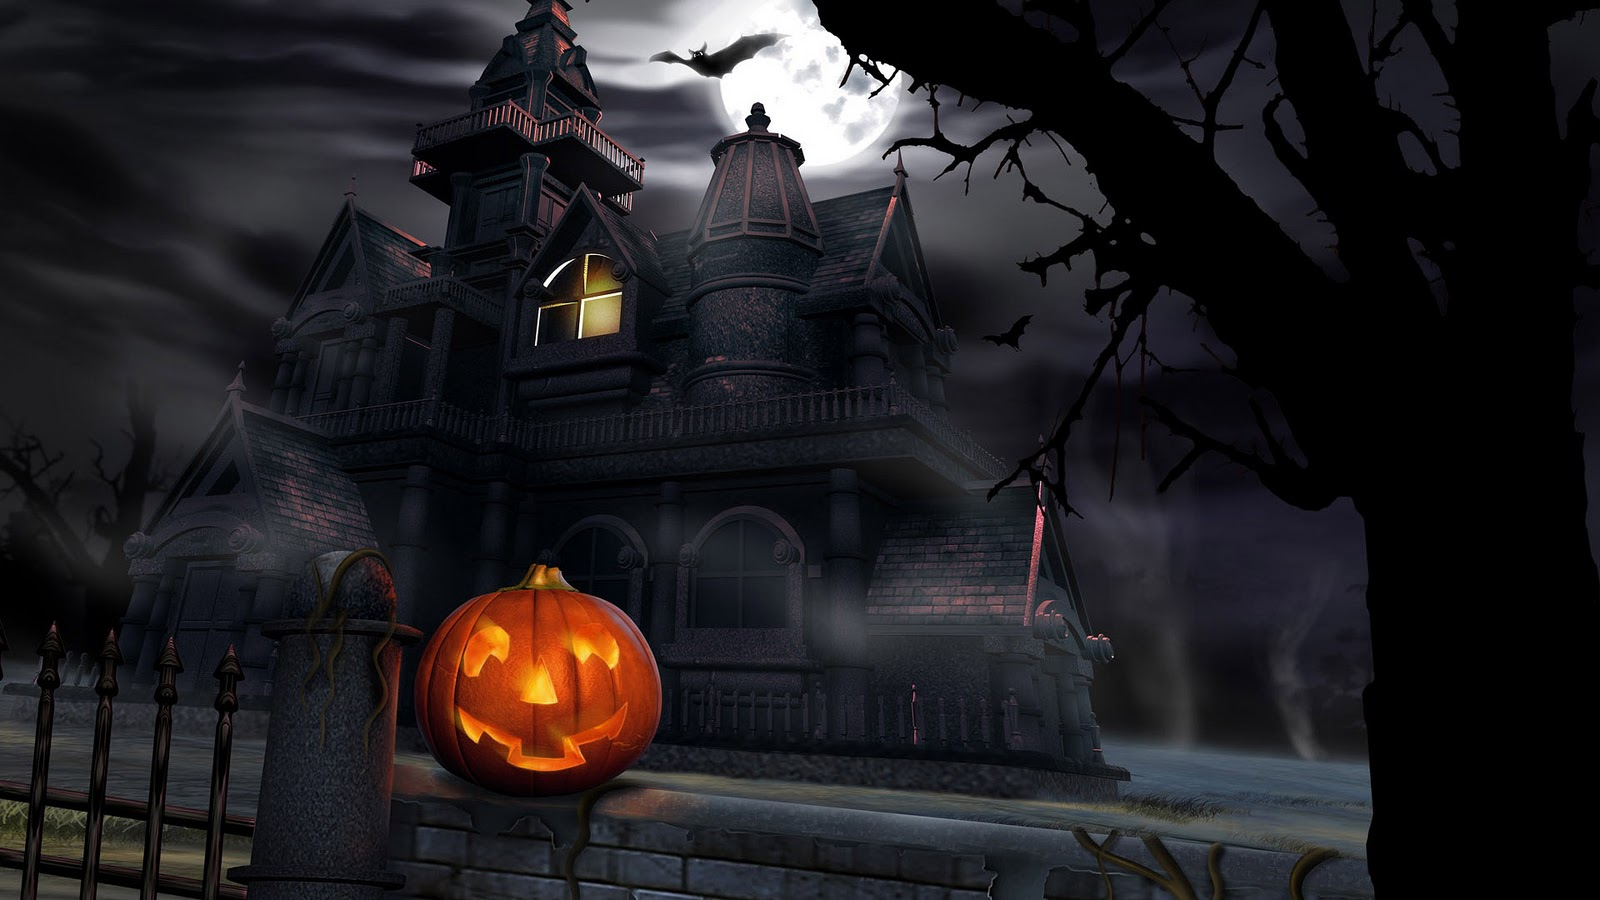 Backgrounds For Halloween - WallpaperSafari